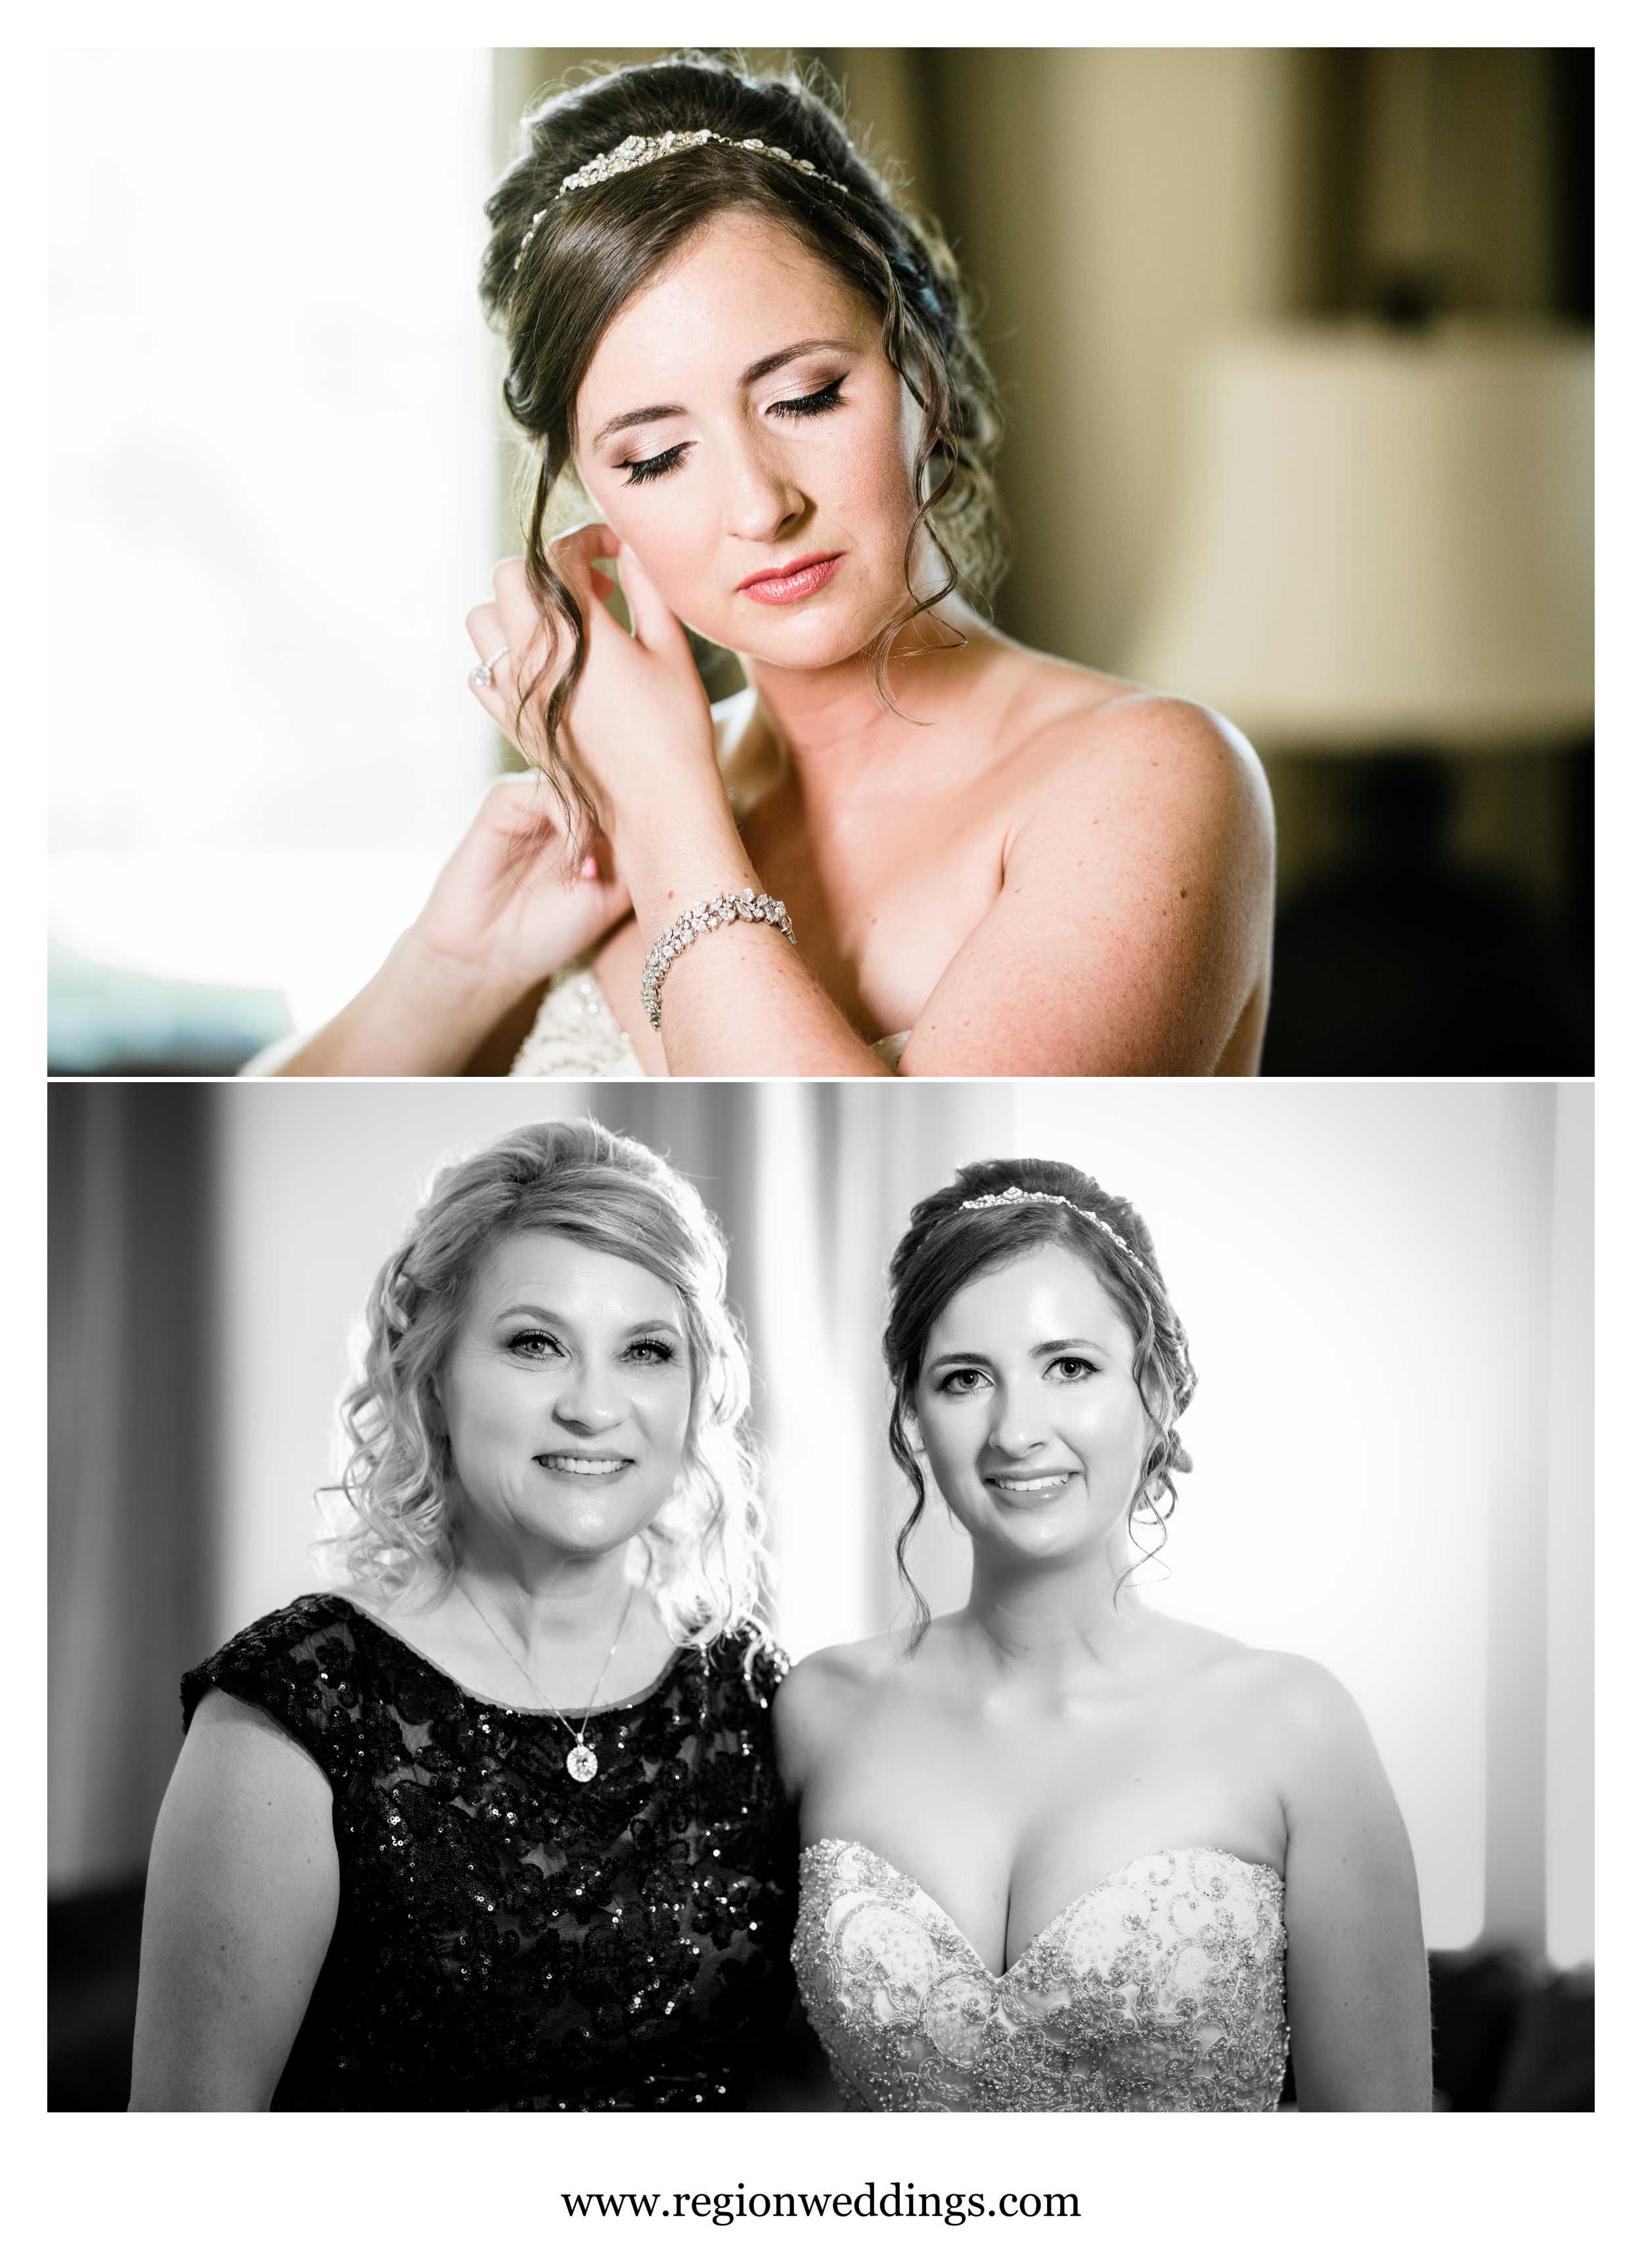 The bride gets ready for a summer wedding at Valparaiso University.